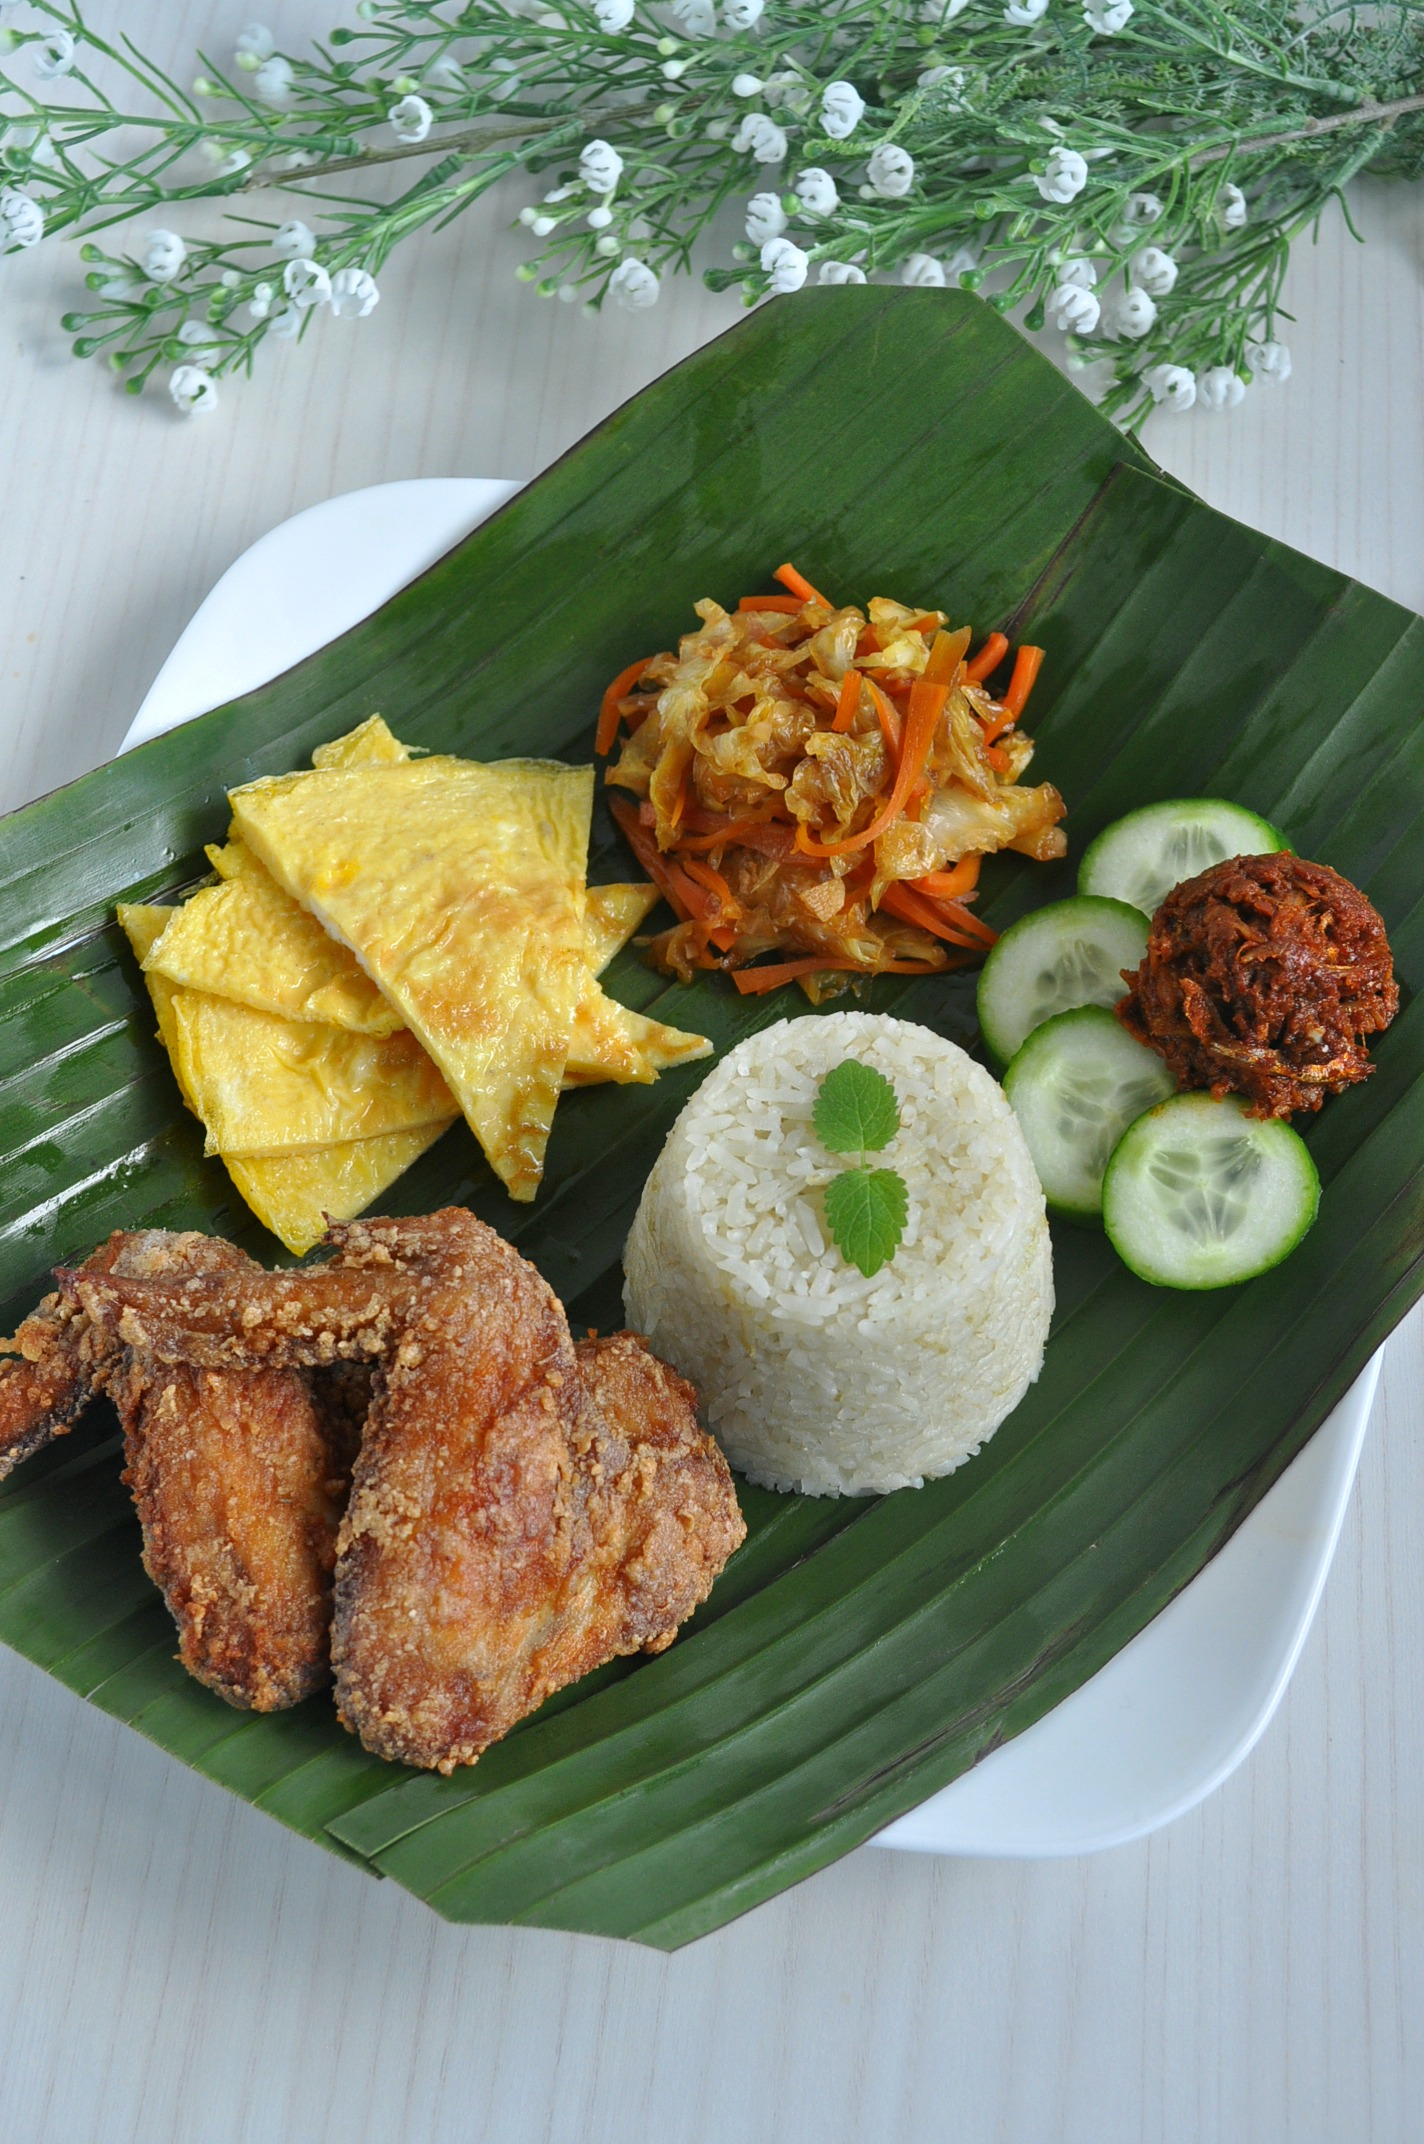 nasi lemak I'm sure nasi lemak needs no introduction but for the uninitiated, this iconic local food is essentially rice cooked in rich coconut milk, and served with fried.